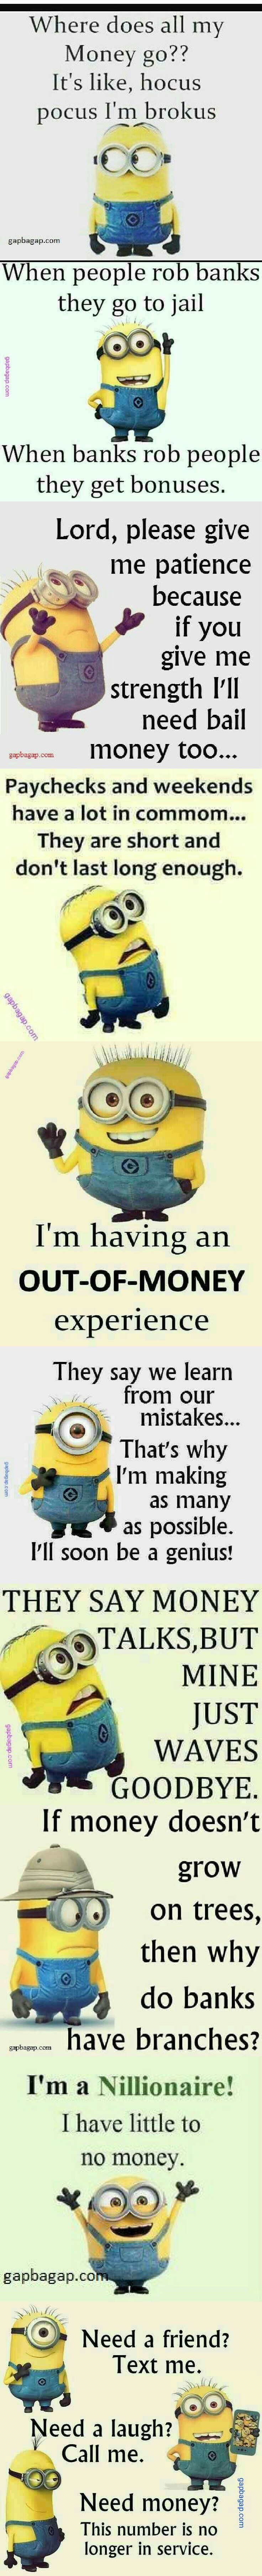 Top  Funny Memes About Money By The Minions